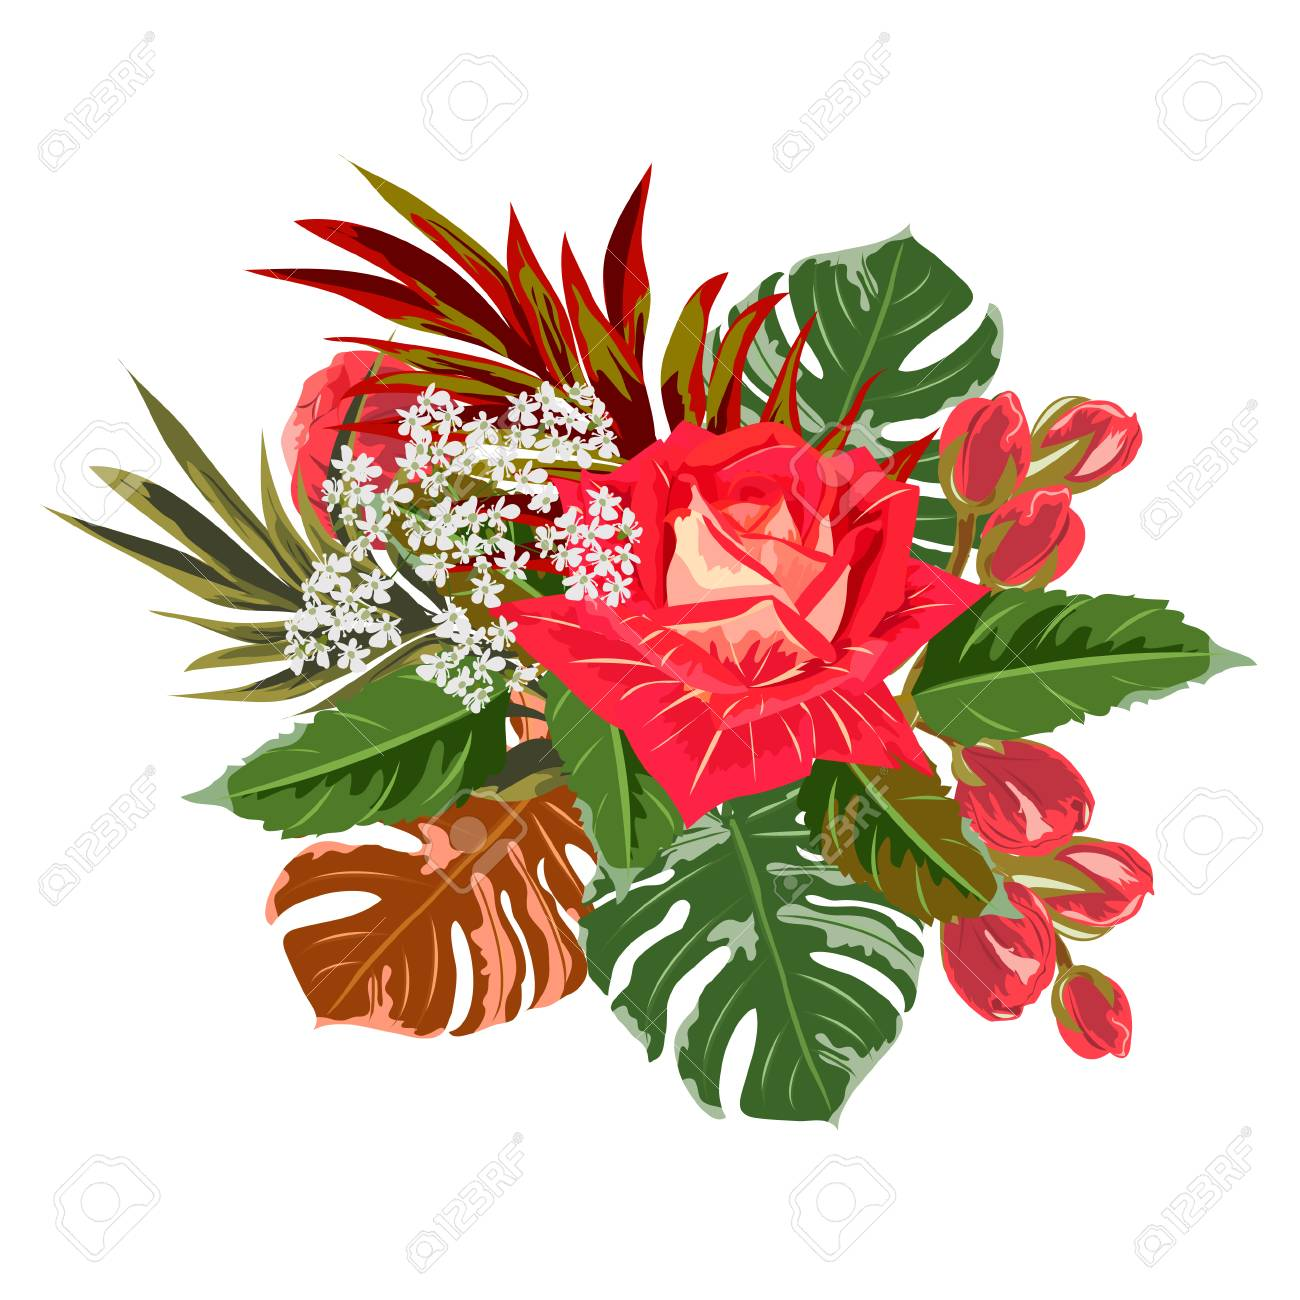 Bouquet Of Red Rose And Tropical Leaves Decor Elements For Greeting Royalty Free Cliparts Vectors And Stock Illustration Image 101742679 Check out our tropical leaf decor selection for the very best in unique or custom, handmade pieces from our shops. bouquet of red rose and tropical leaves decor elements for greeting royalty free cliparts vectors and stock illustration image 101742679